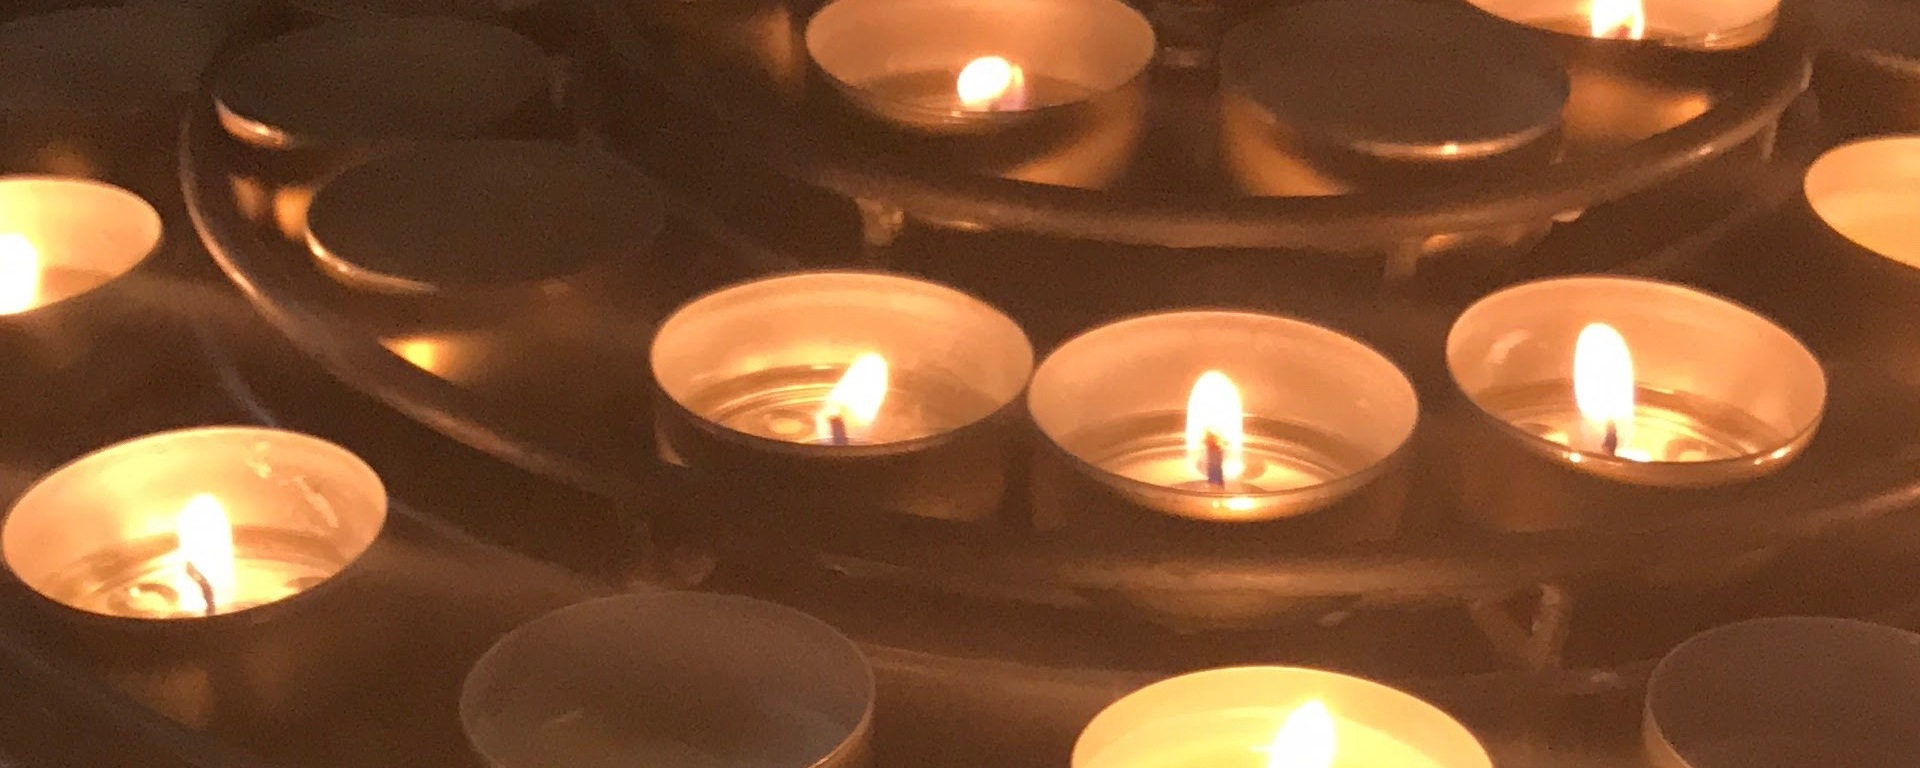 small candles stacked on a rack